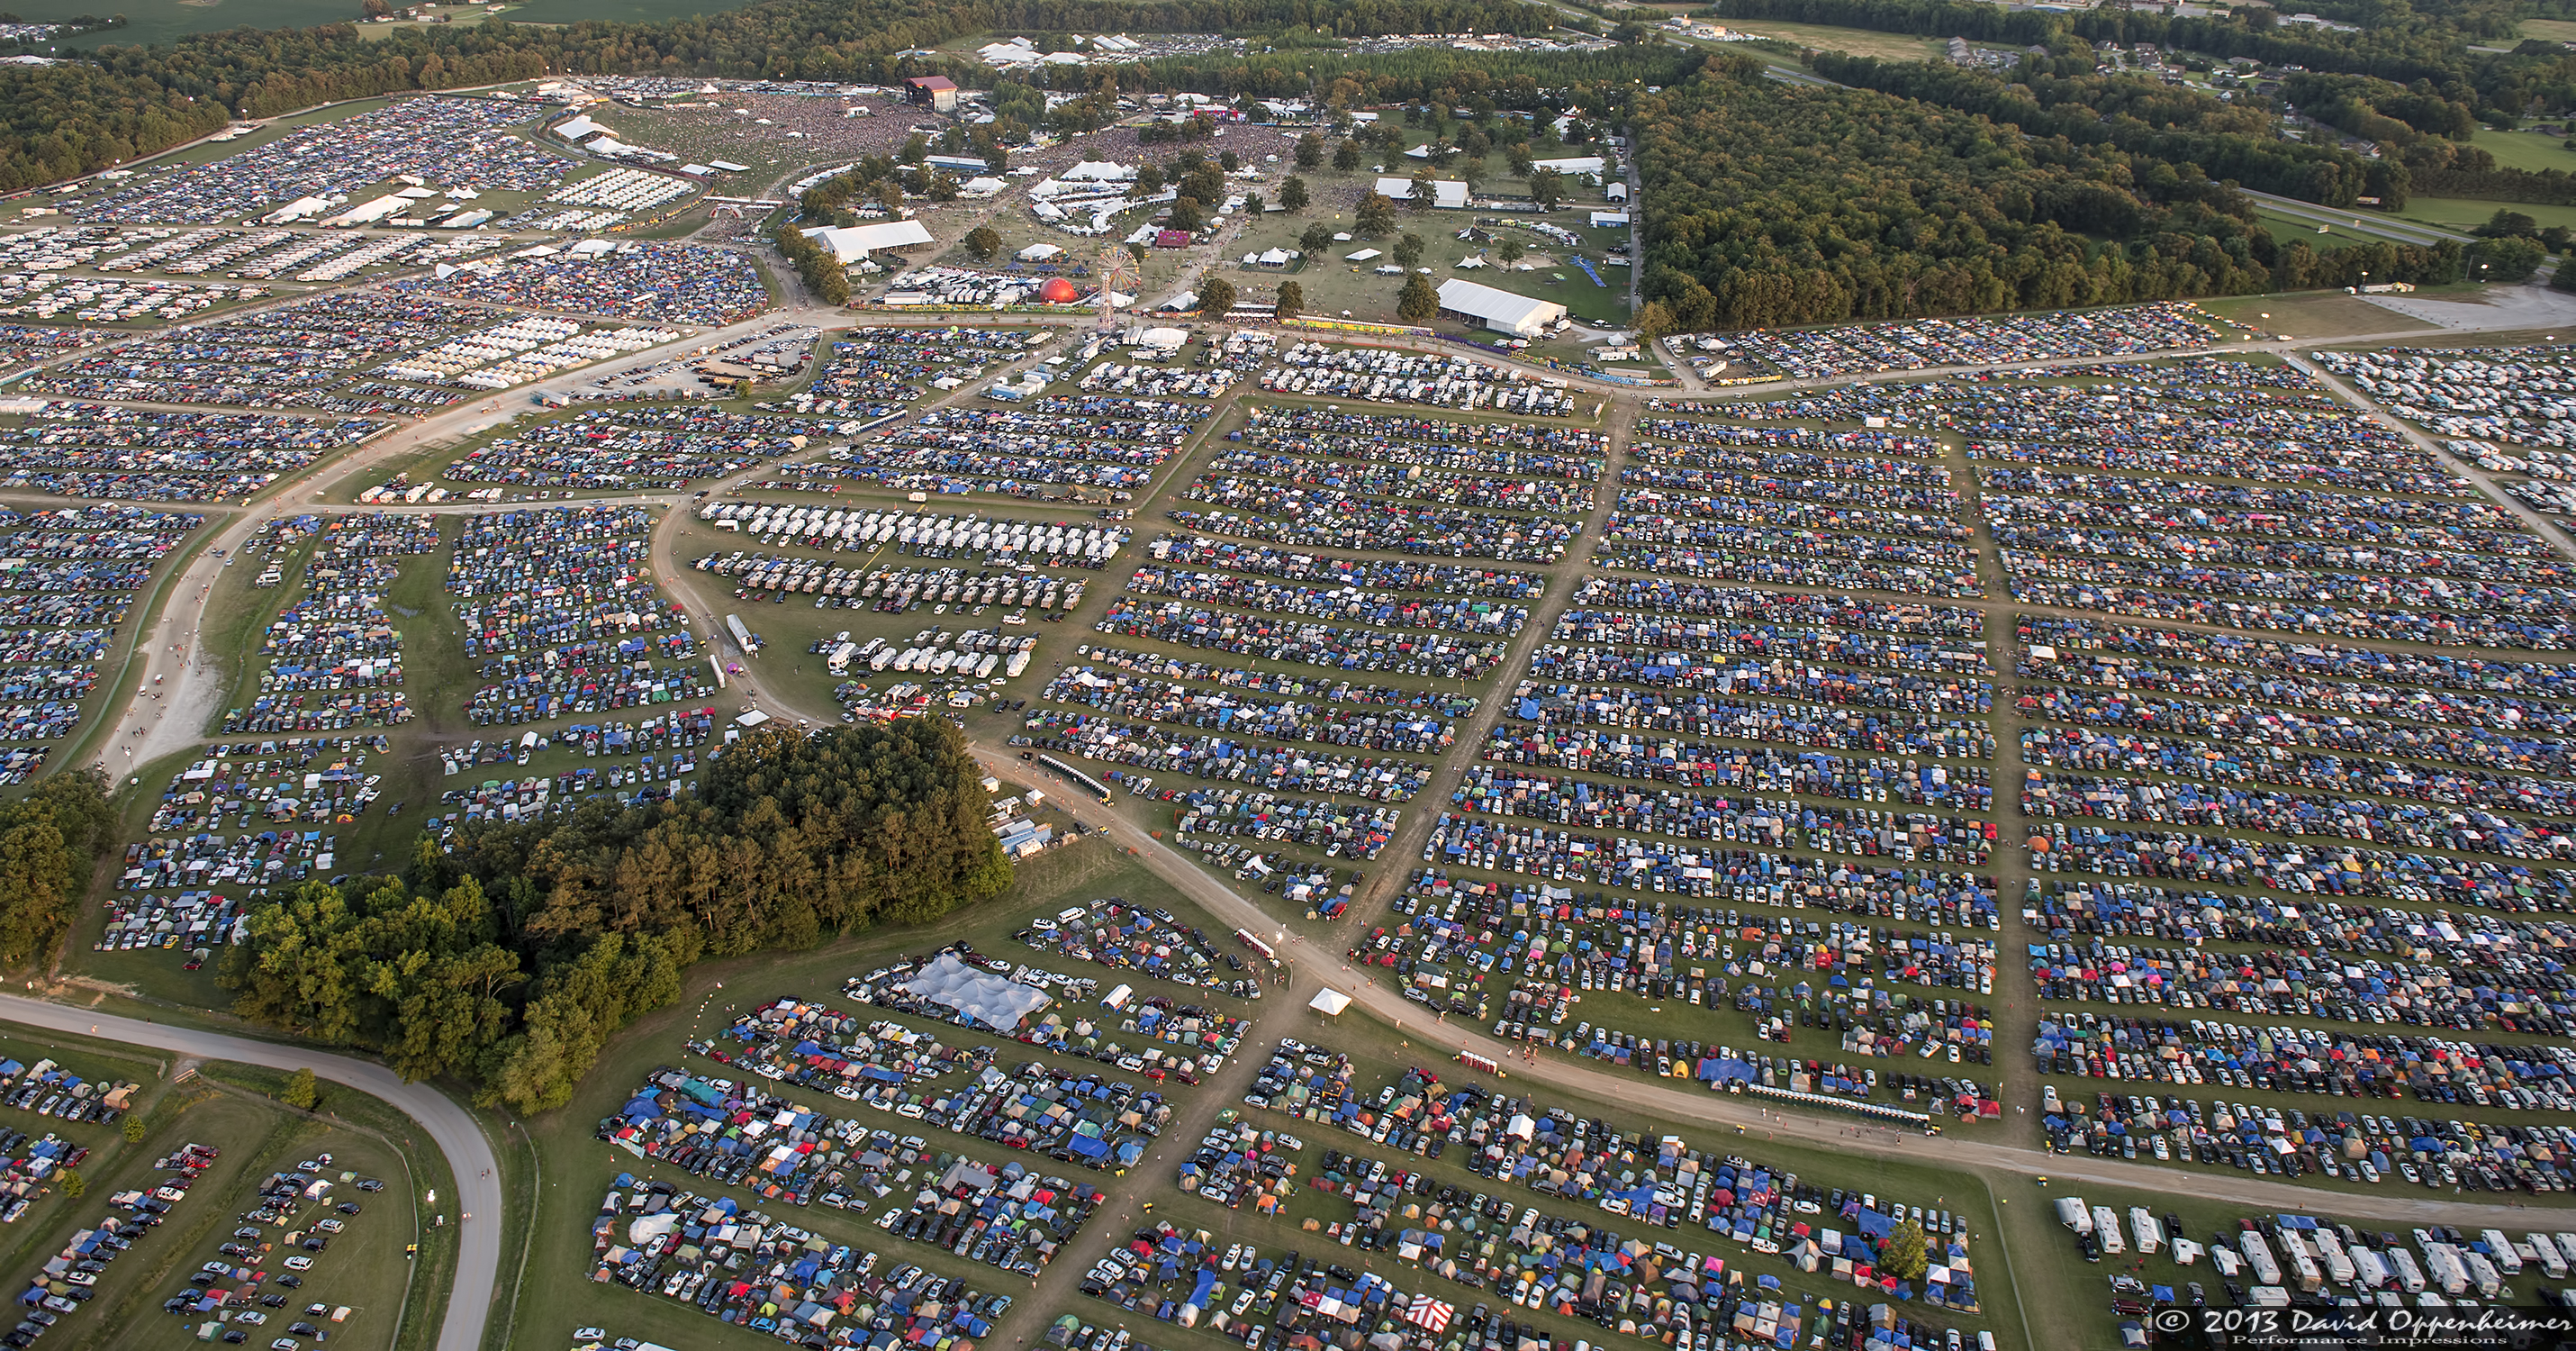 Bonnaroo Music Festival aerial photo of festival crowd on June 14, 2013 in Manchester, Tennessee - © 2013 David Oppenheimer - Performance Impressions Concert Photography Archives - http://www.performanceimpressions.com